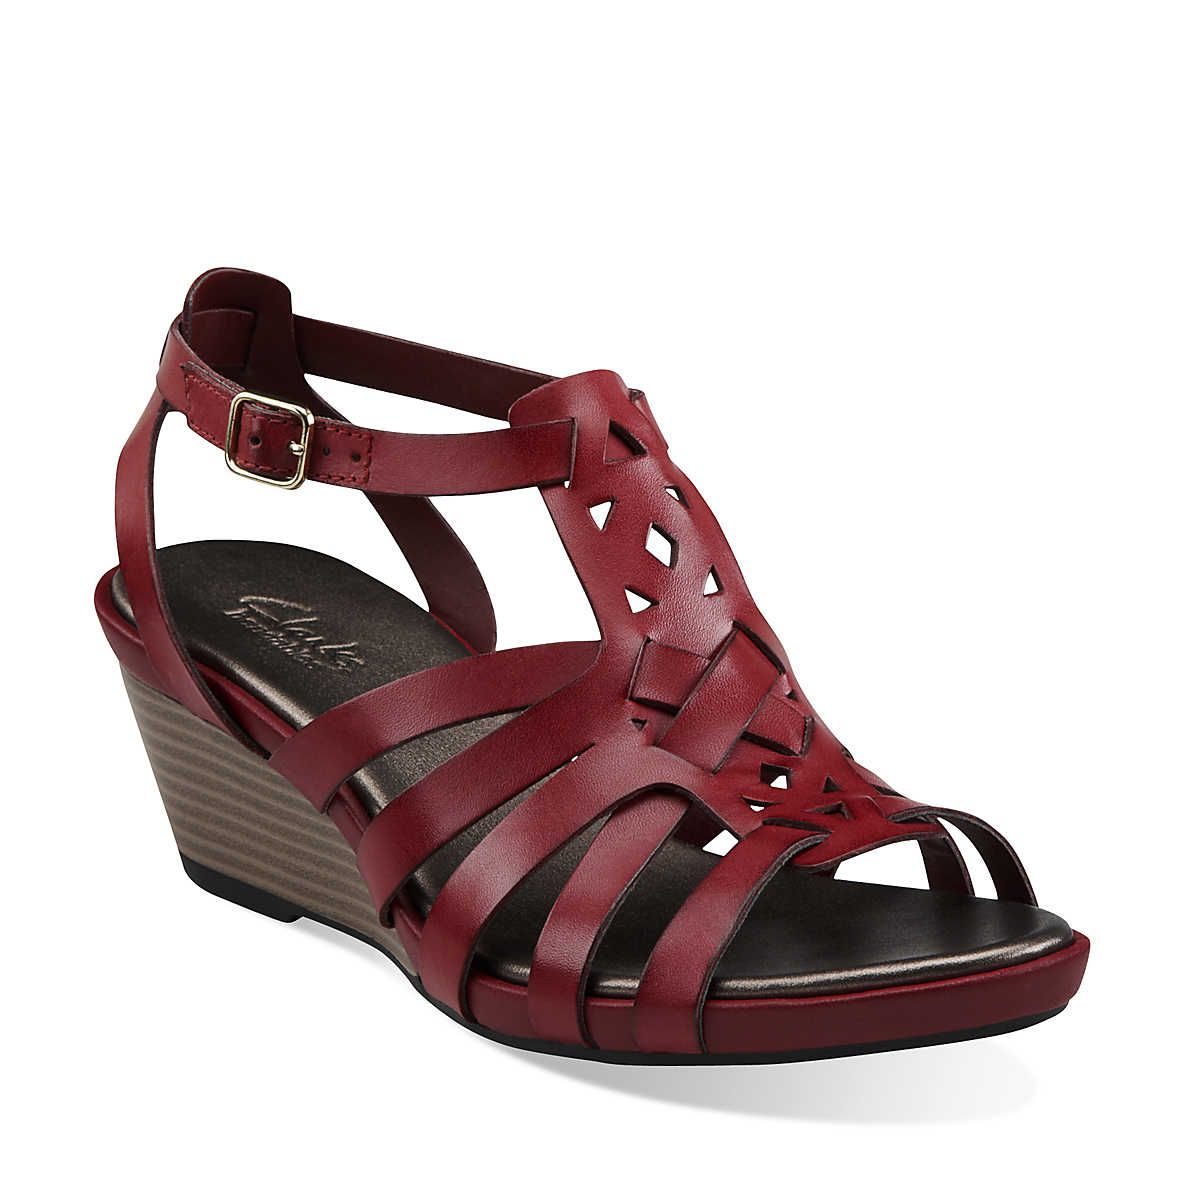 626b22ffe16 Lucia Coral in Red Leather - Womens Sandals from Clarks